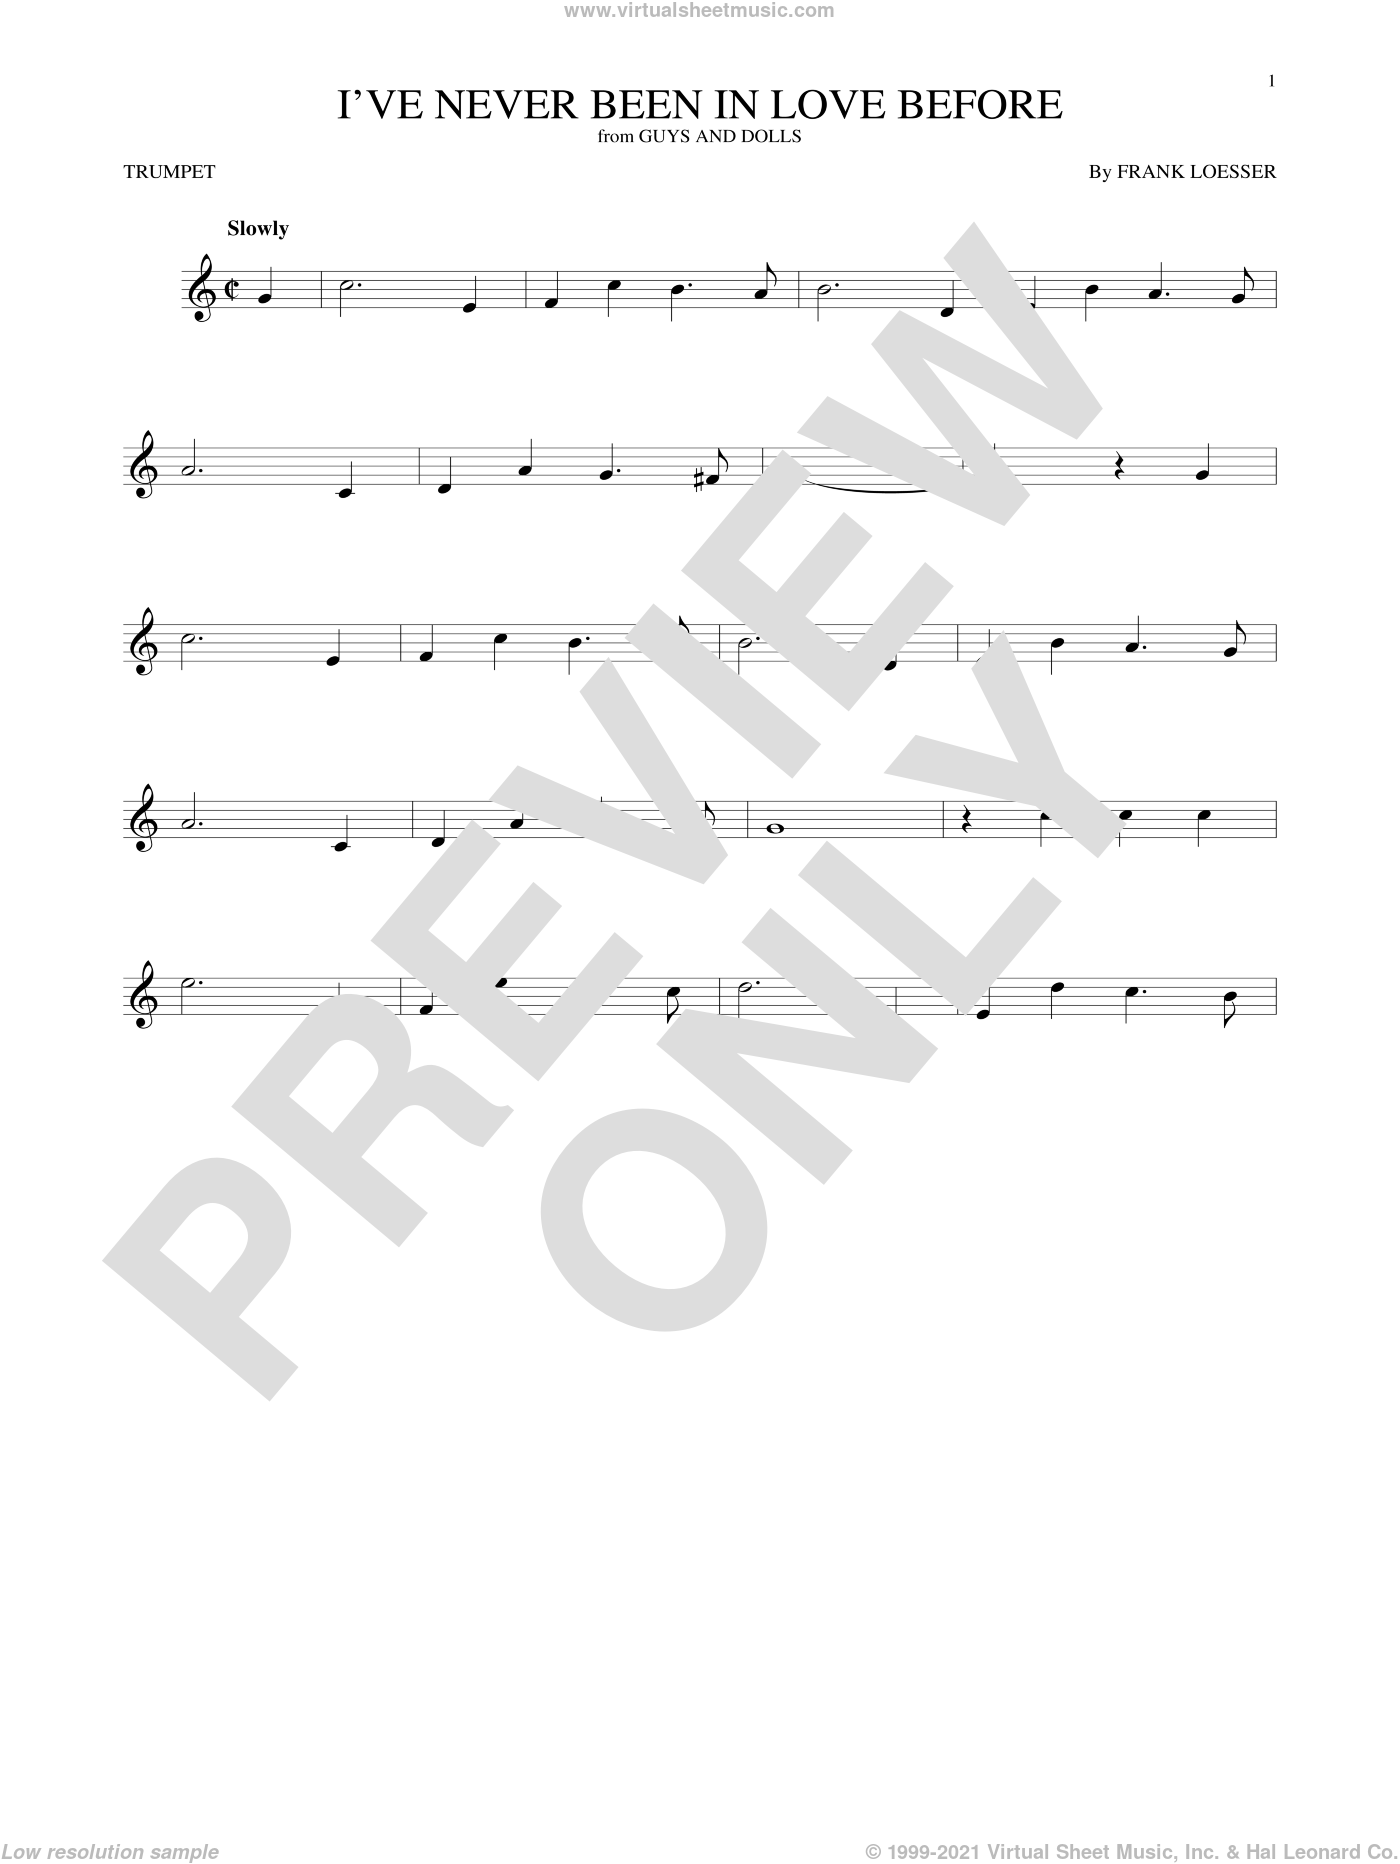 I've Never Been In Love Before sheet music for trumpet solo by Frank Loesser, Billy Eckstine, Chet Baker and Stan Kenton, intermediate skill level